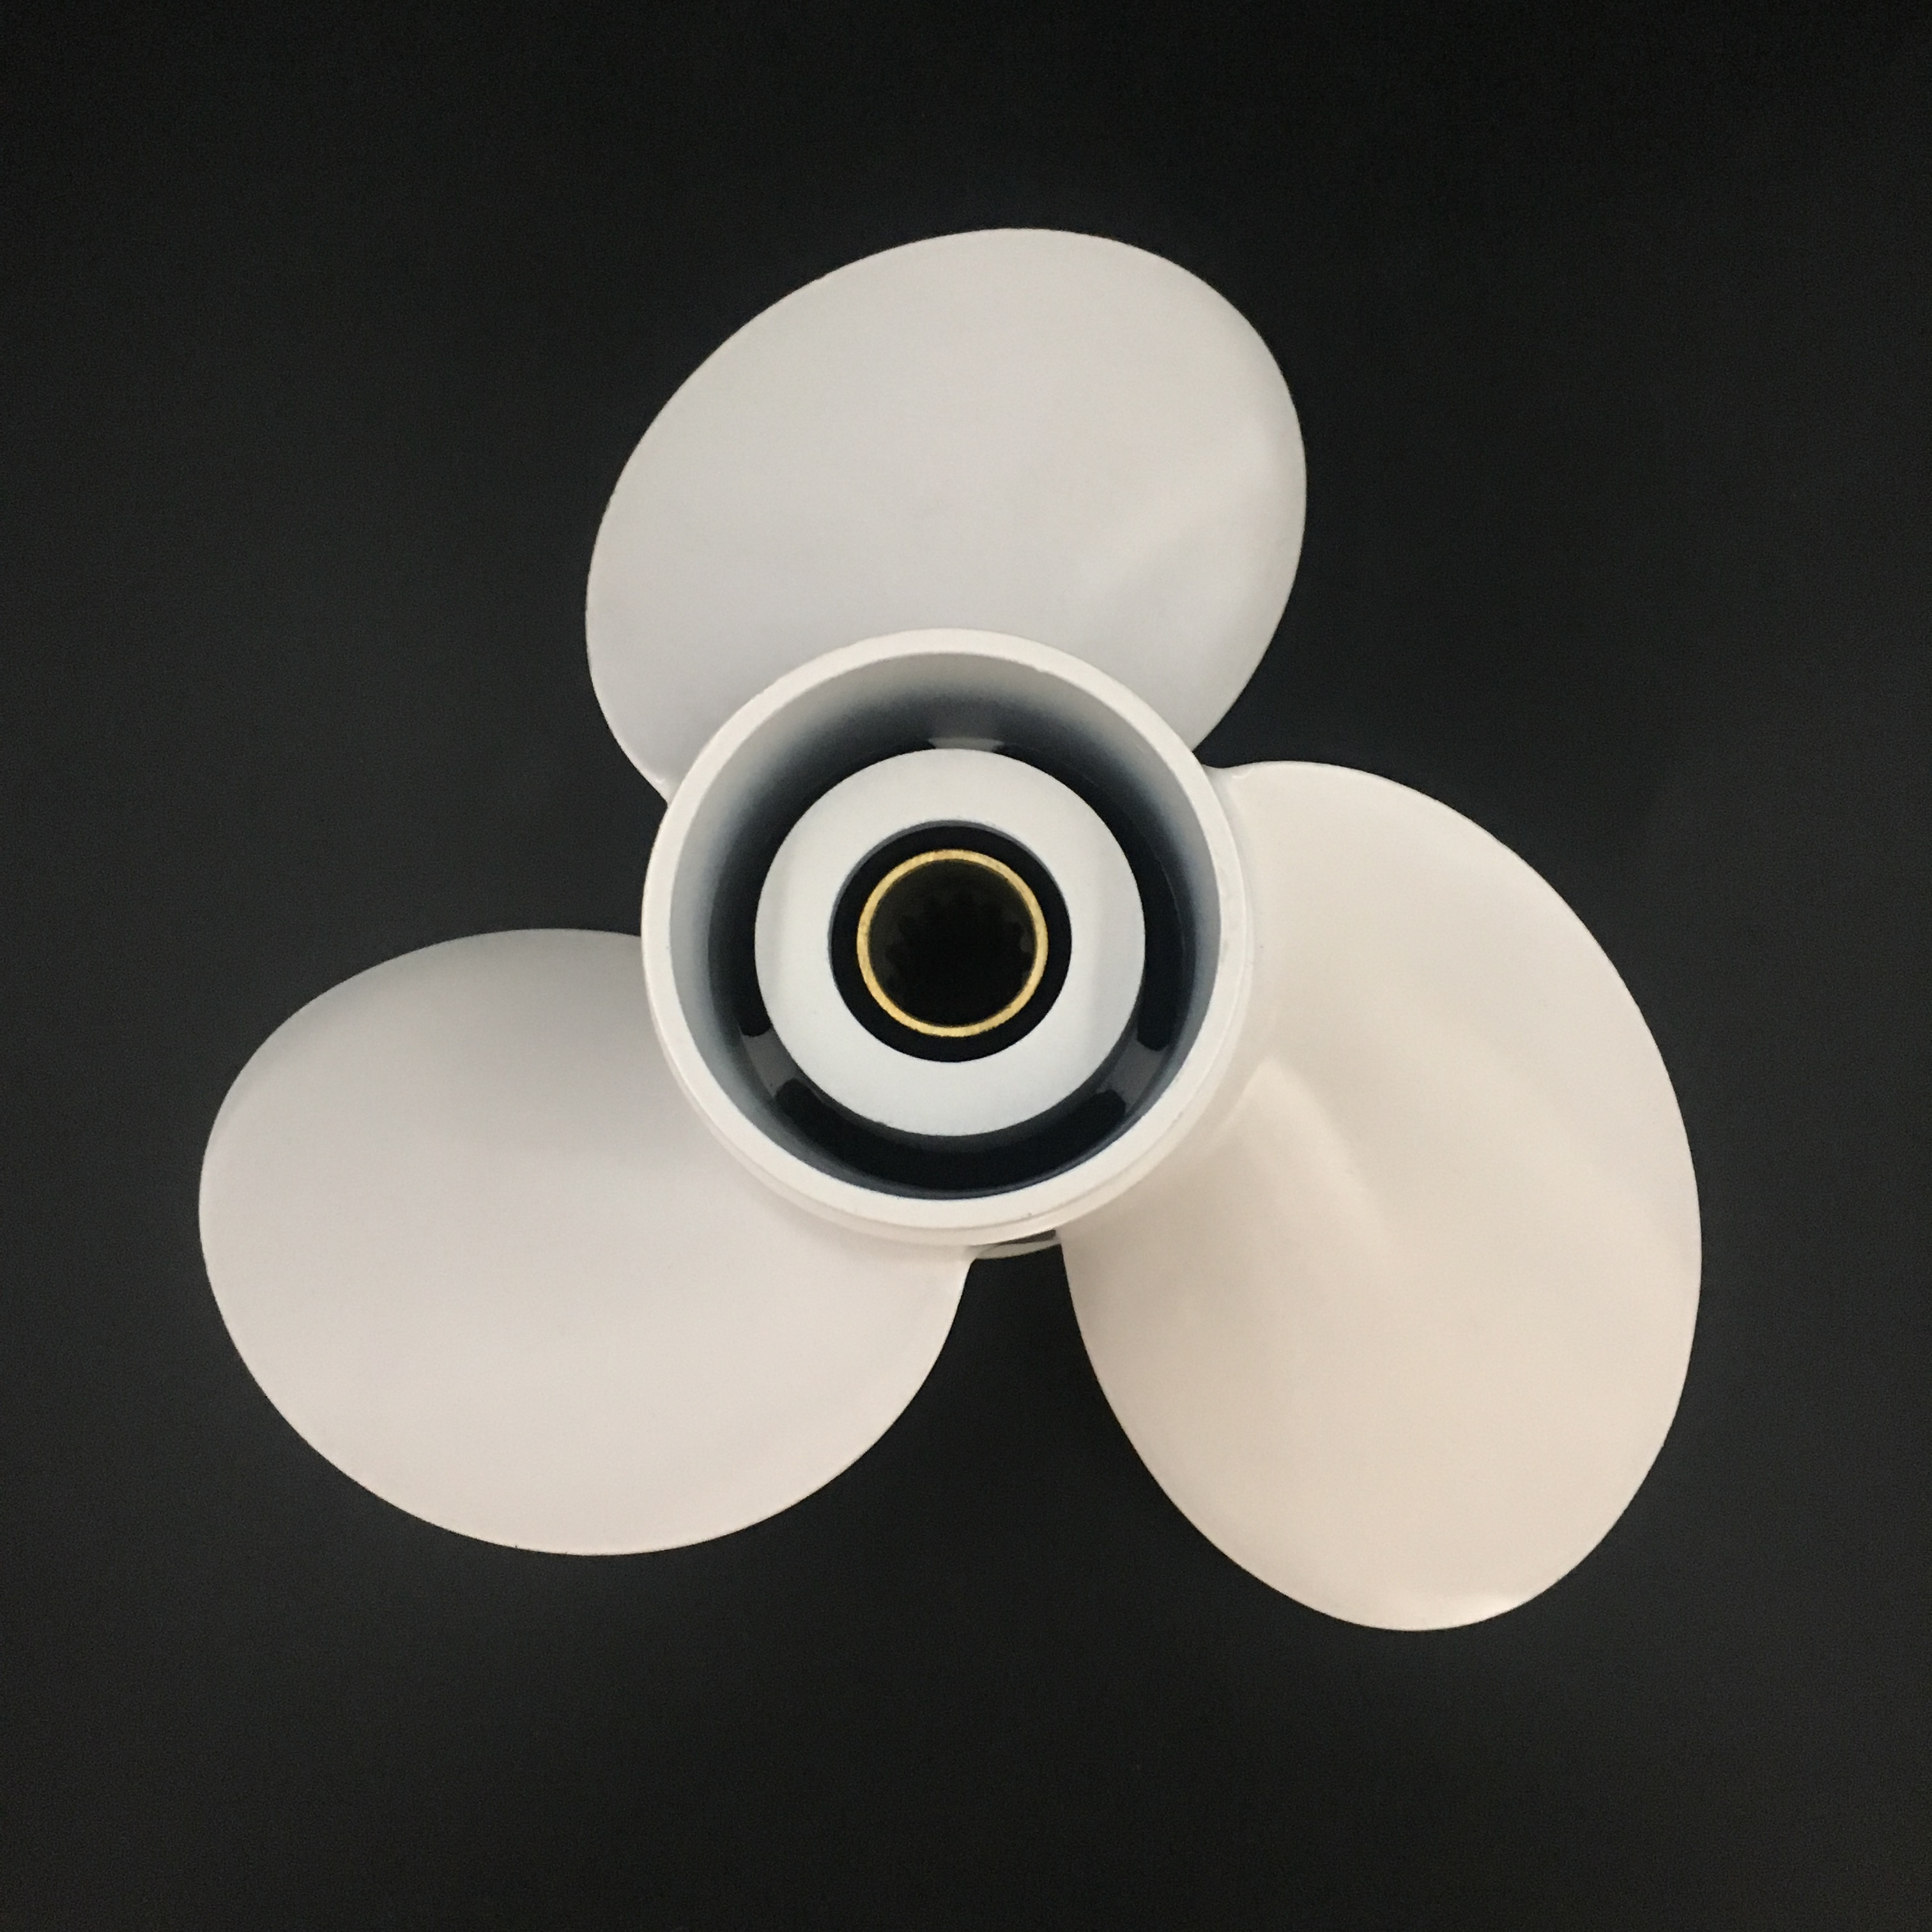 Boat propeller suit for Yamaha 10 3/8x13 aluminum prop 40-55HP 3 blade 13 tooth RH enlarge